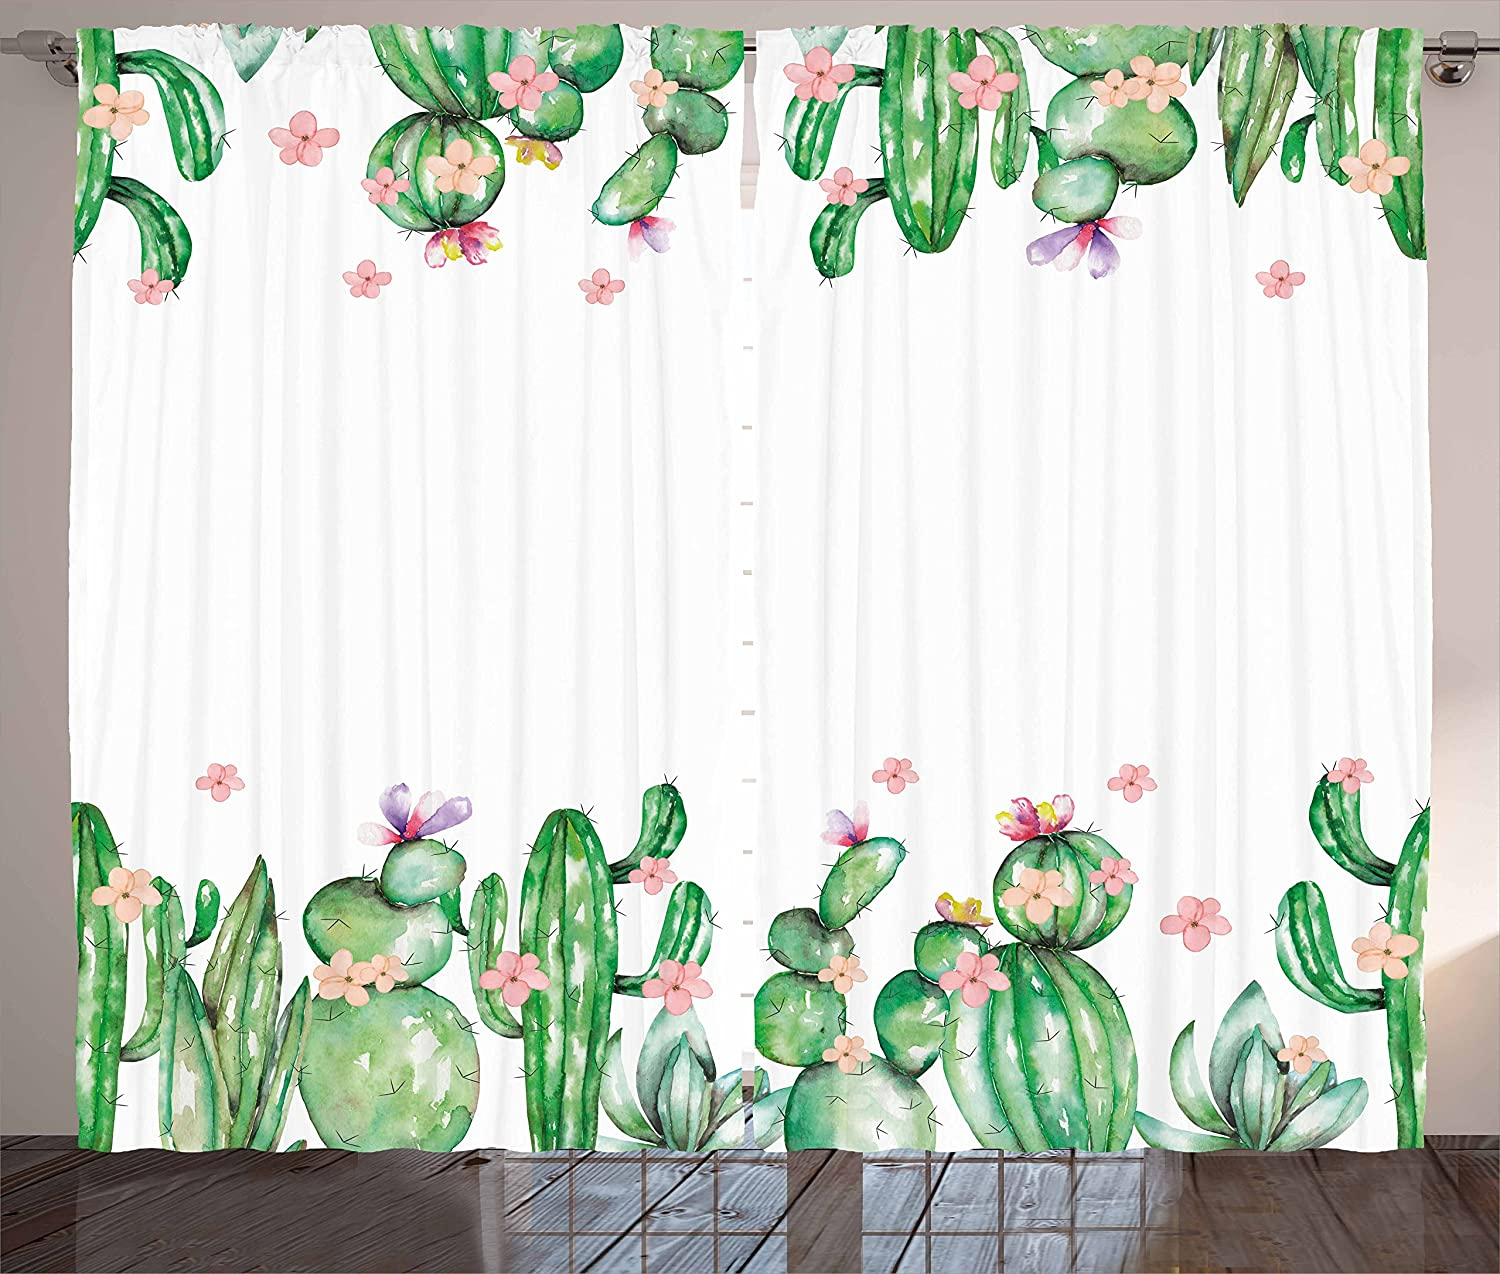 Ambesonne List price Cactus Curtains Super intense SALE Mexico Romantic Style Blossoms Tender